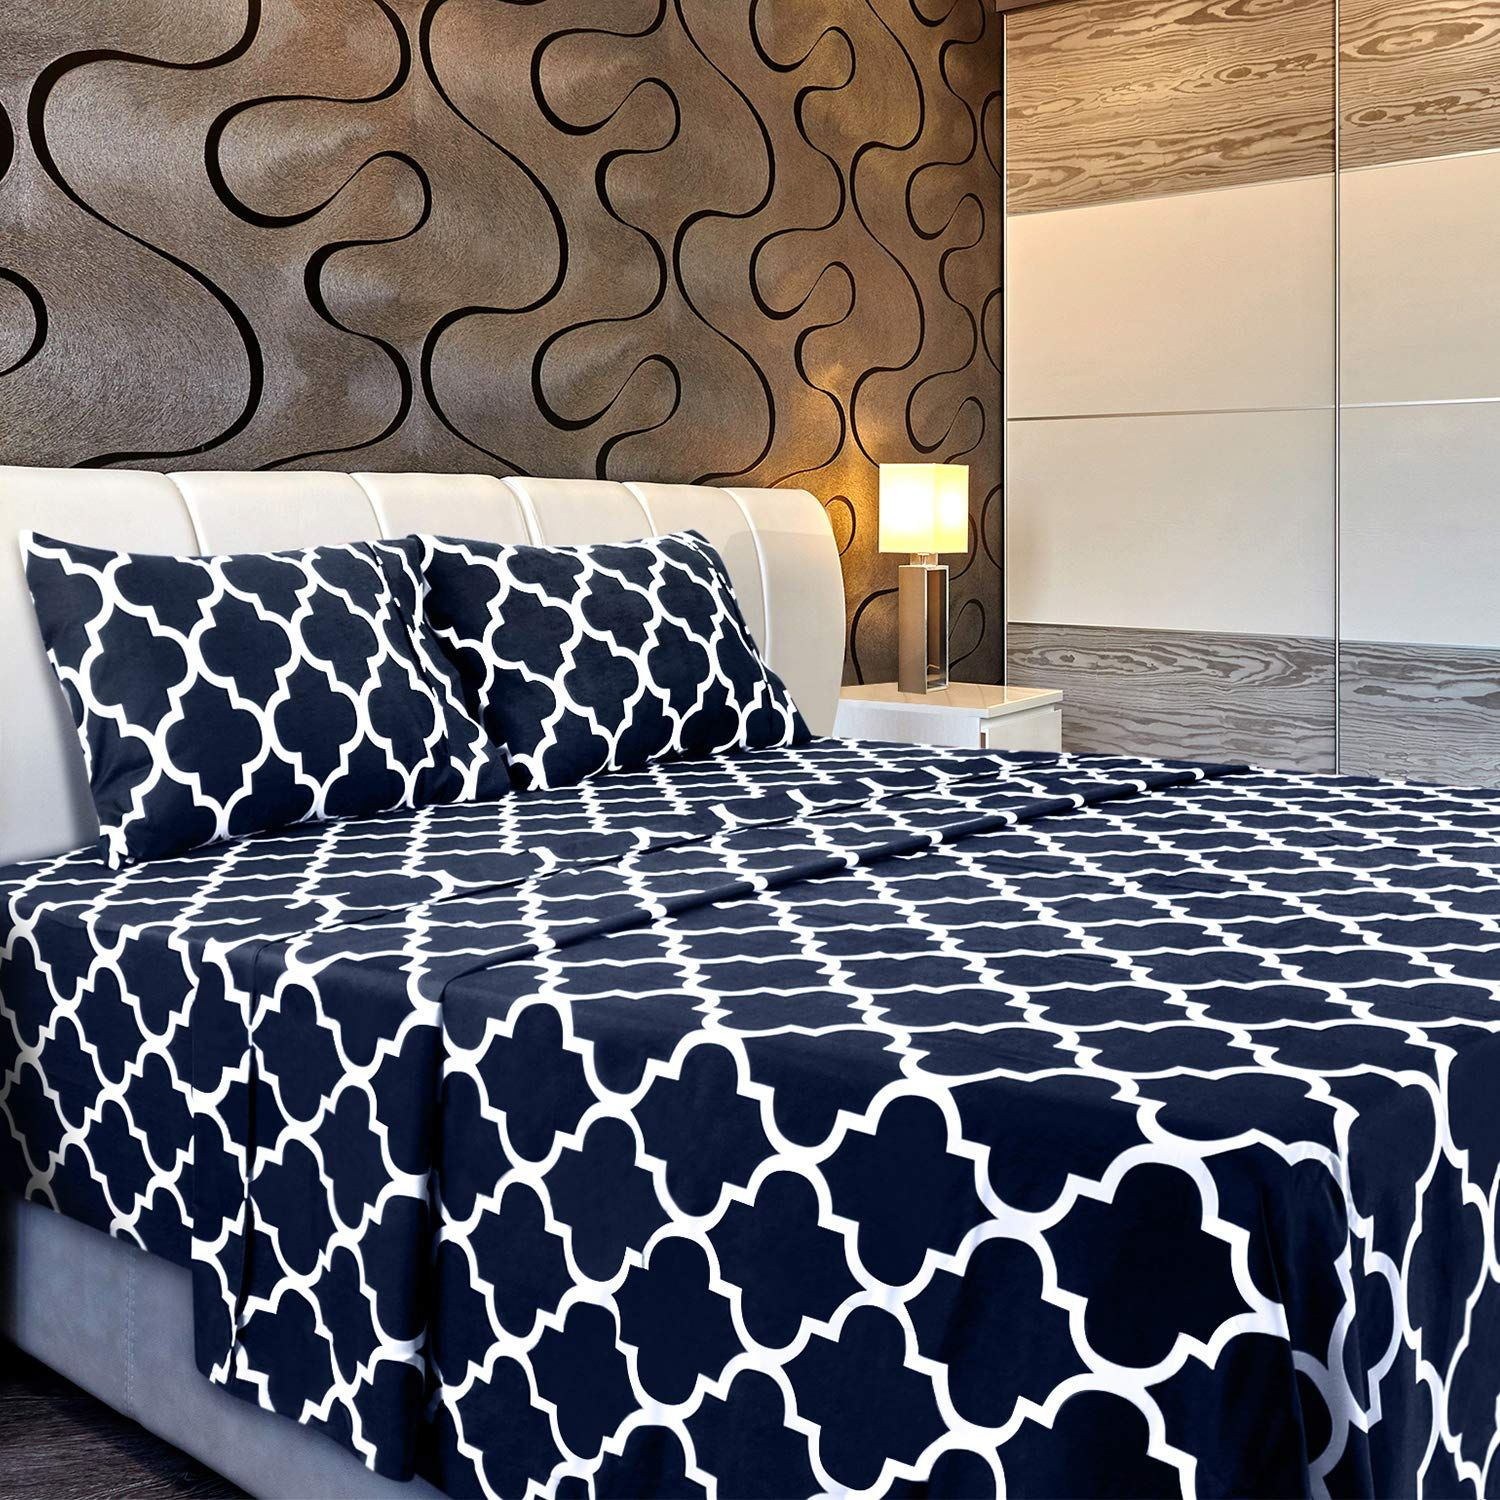 Utopia Bedding 4pc Bed Sheet Set 1 Flat Sheet 1 Fitted Sheet And 2 Pillowcases Queen Navy Bed Sheet Sets Bed Sheets Best Bed Sheets